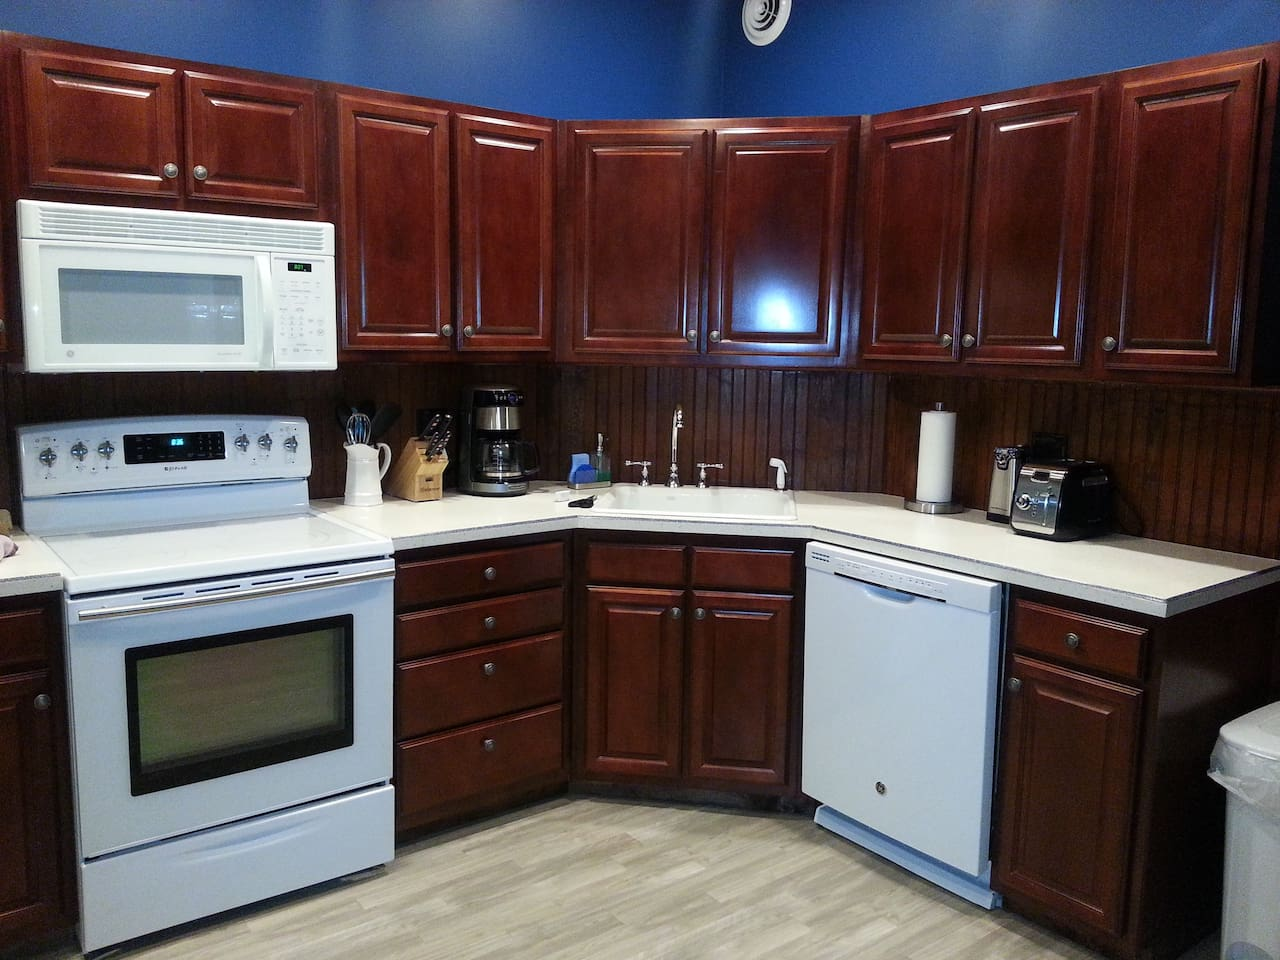 Fully equipped kitchen with everything needed to cook!  Dishwasher detergent, paper towels, garbage bags all provided. Ample lighting and a ceiling fan.